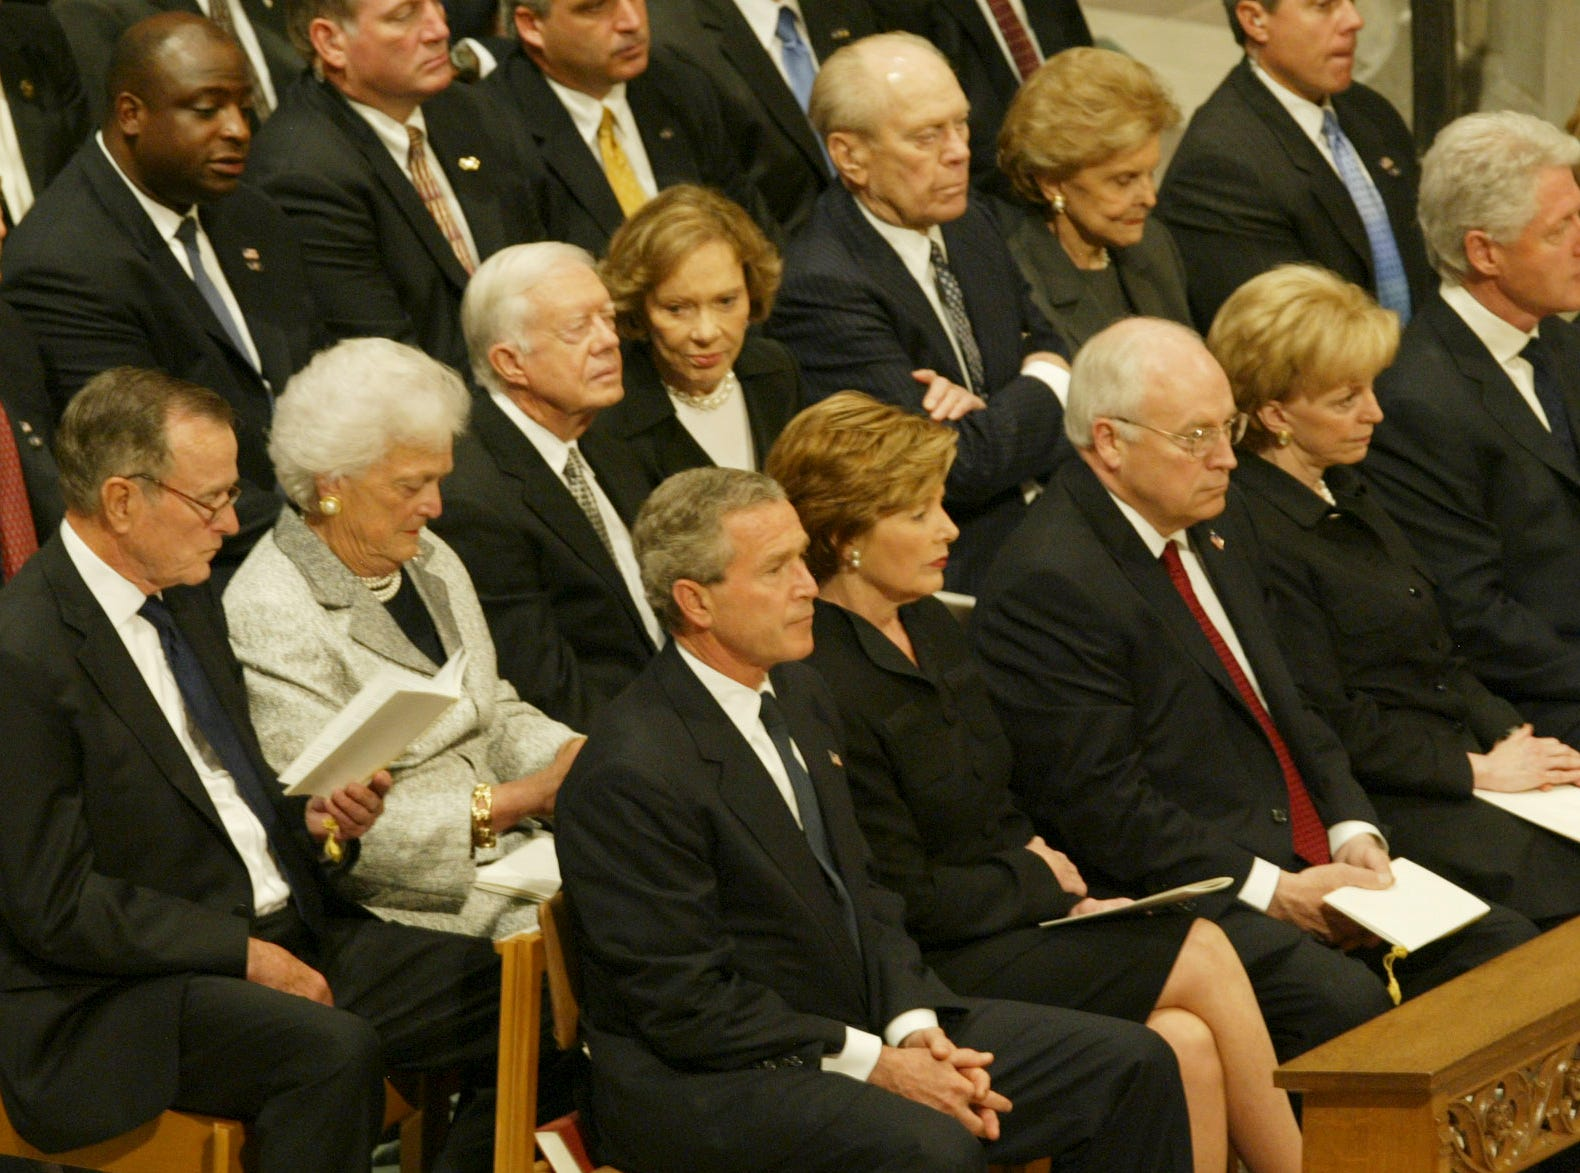 President Bush, front center, and first lady Laura Bush sit with former US Presidents and their wives during during funeral services at the National Cathedral in Washington Friday, June 11, 2004 for former President Ronald Reagan. Back row, from left are: George H.W. and Barbara Bush, Jimmy and Rossalyn Carter, Gerald and Betty Ford. Front row, from left are: George and Laura Bush, Vice President Dick Cheney and wife Lynne, and Bill Clinton and Sen. Hillary Clinton, D-N.Y. (AP Photo/Ron Edmonds)